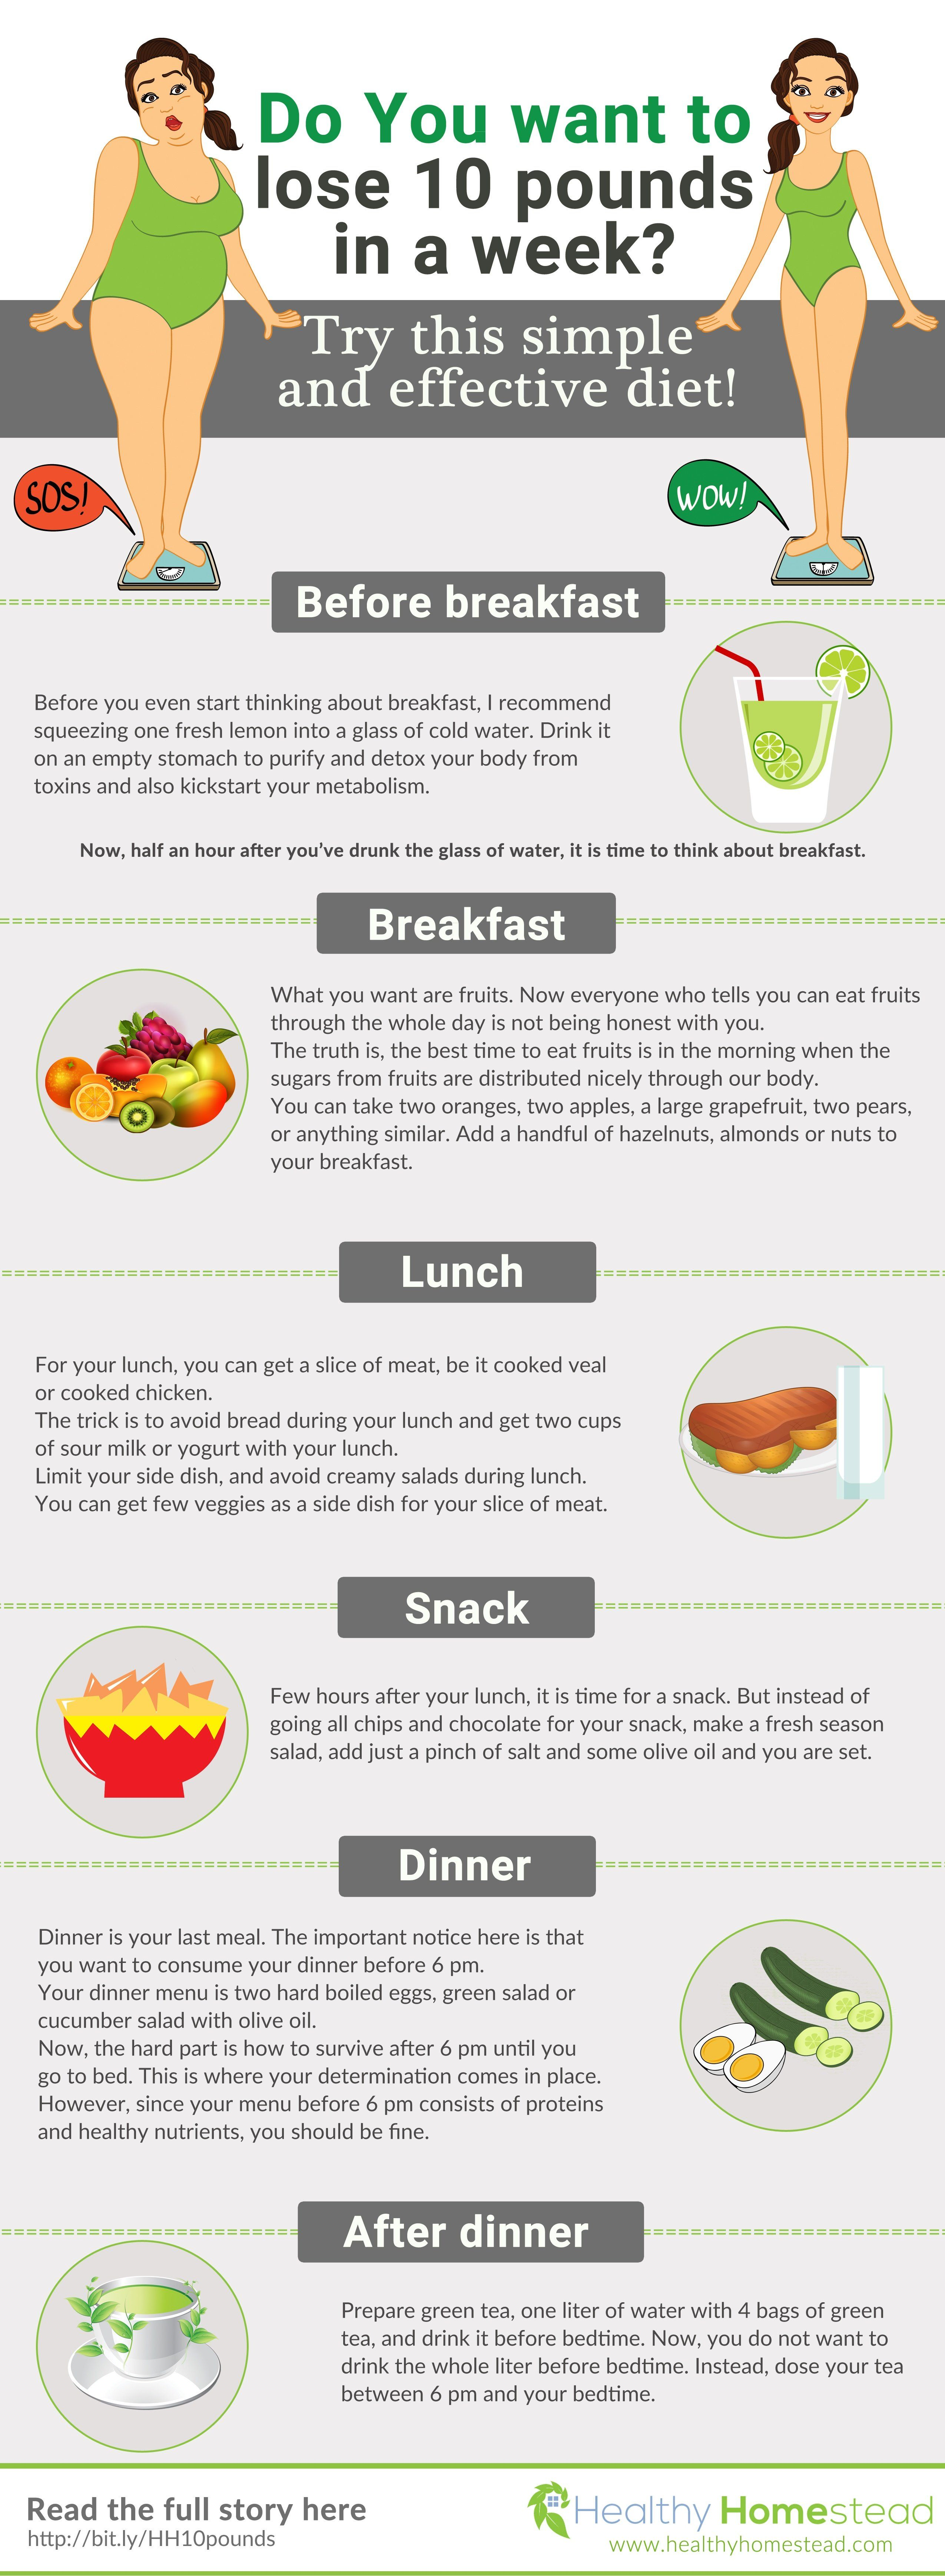 This Simple Diet Can Help You Lose 10 Pounds in A Week